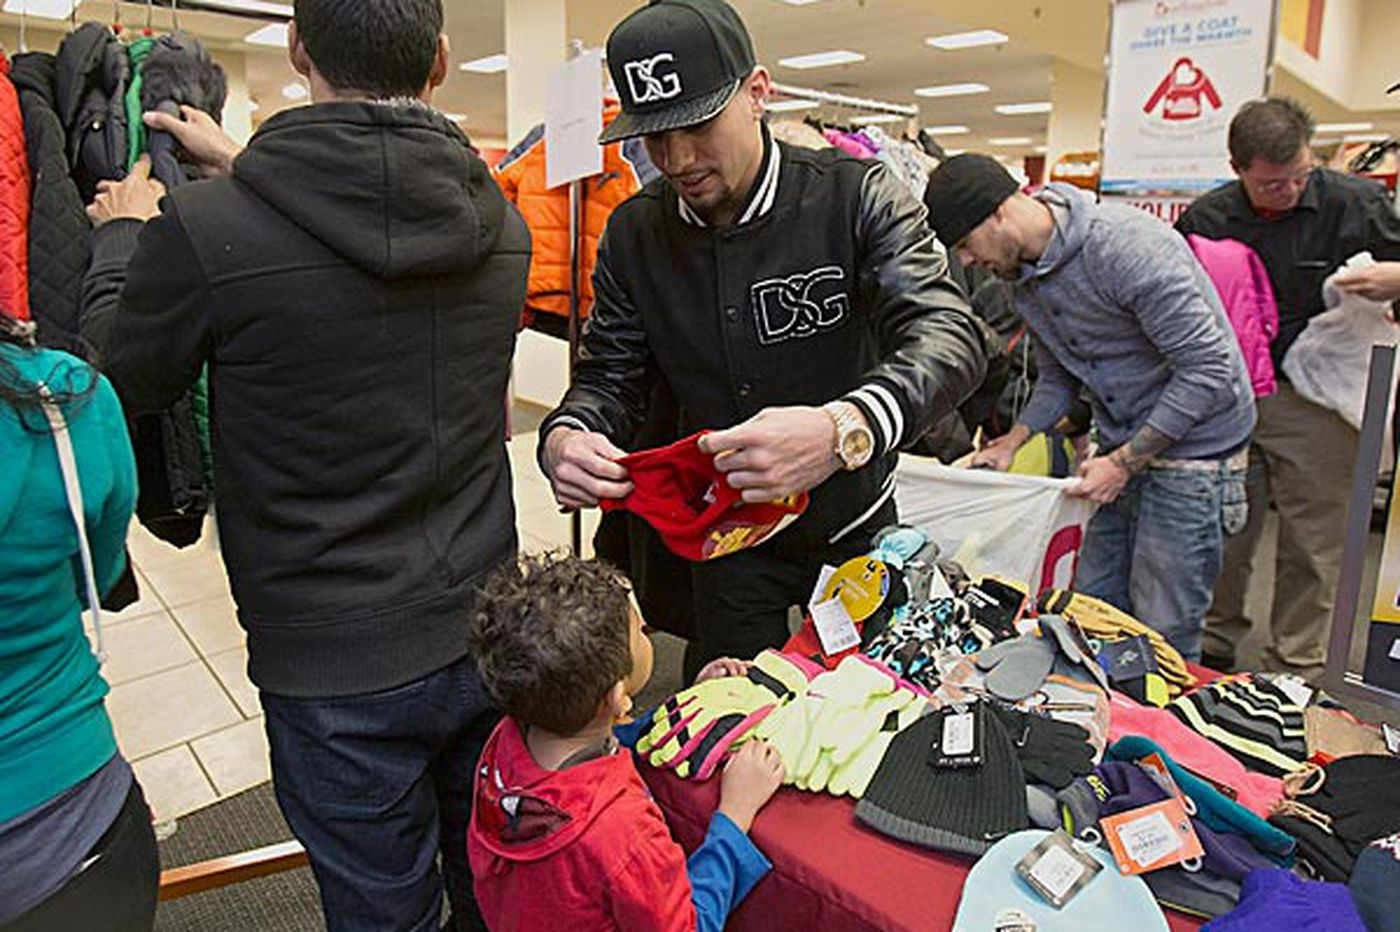 Champion Danny Garcia provides warmth in Hunting Park